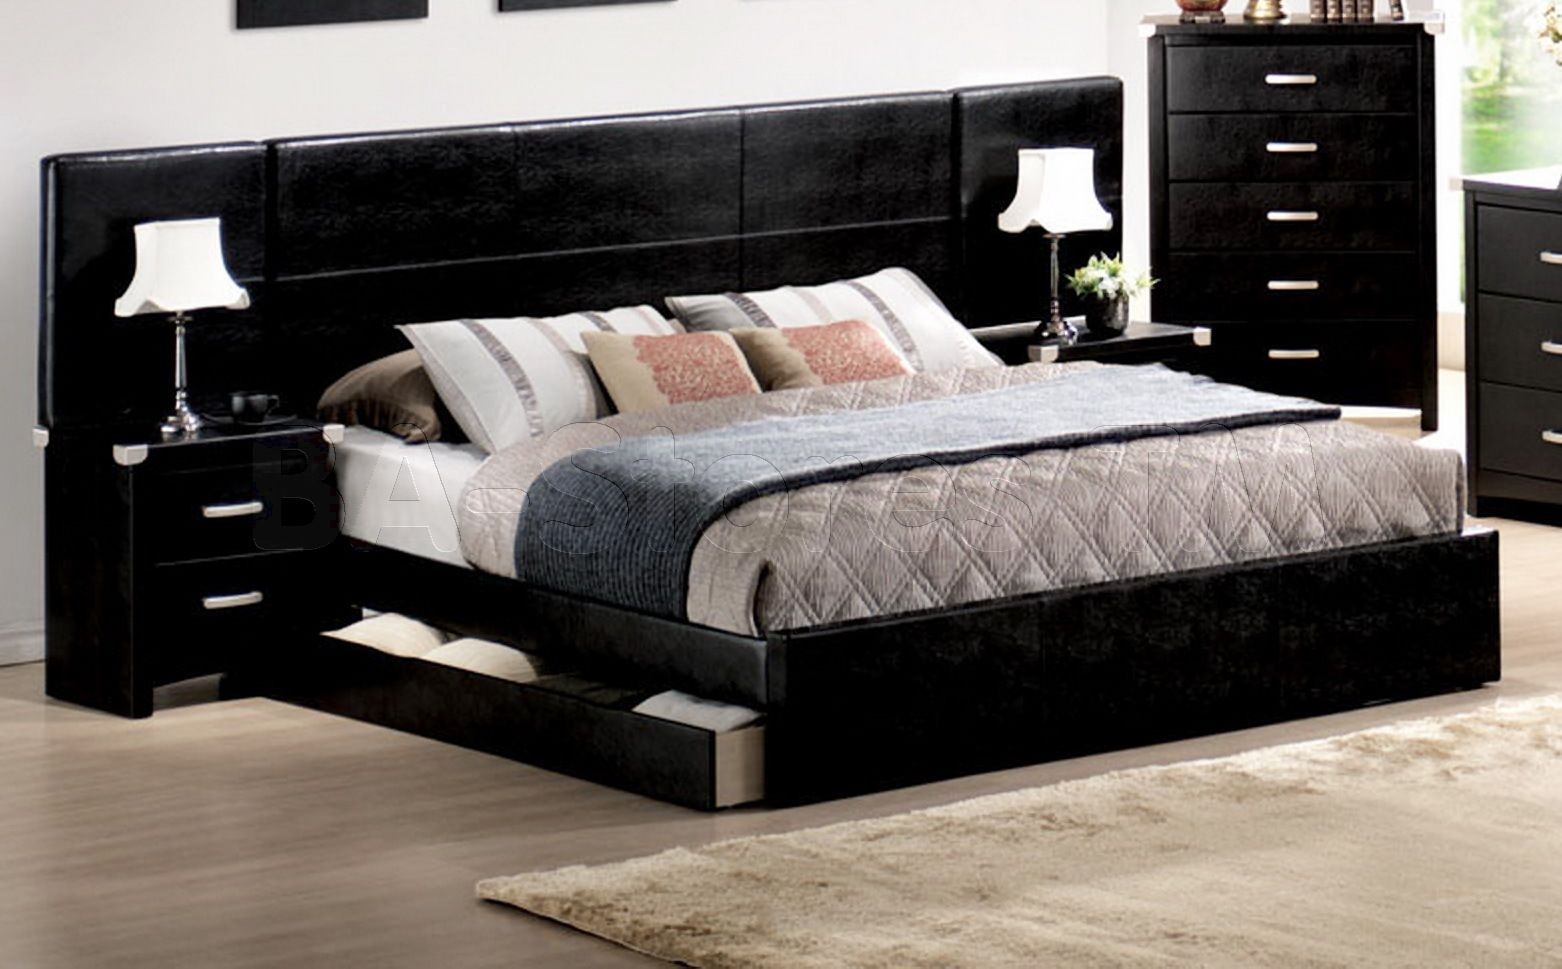 Be bed frames with headboard storage - Beds